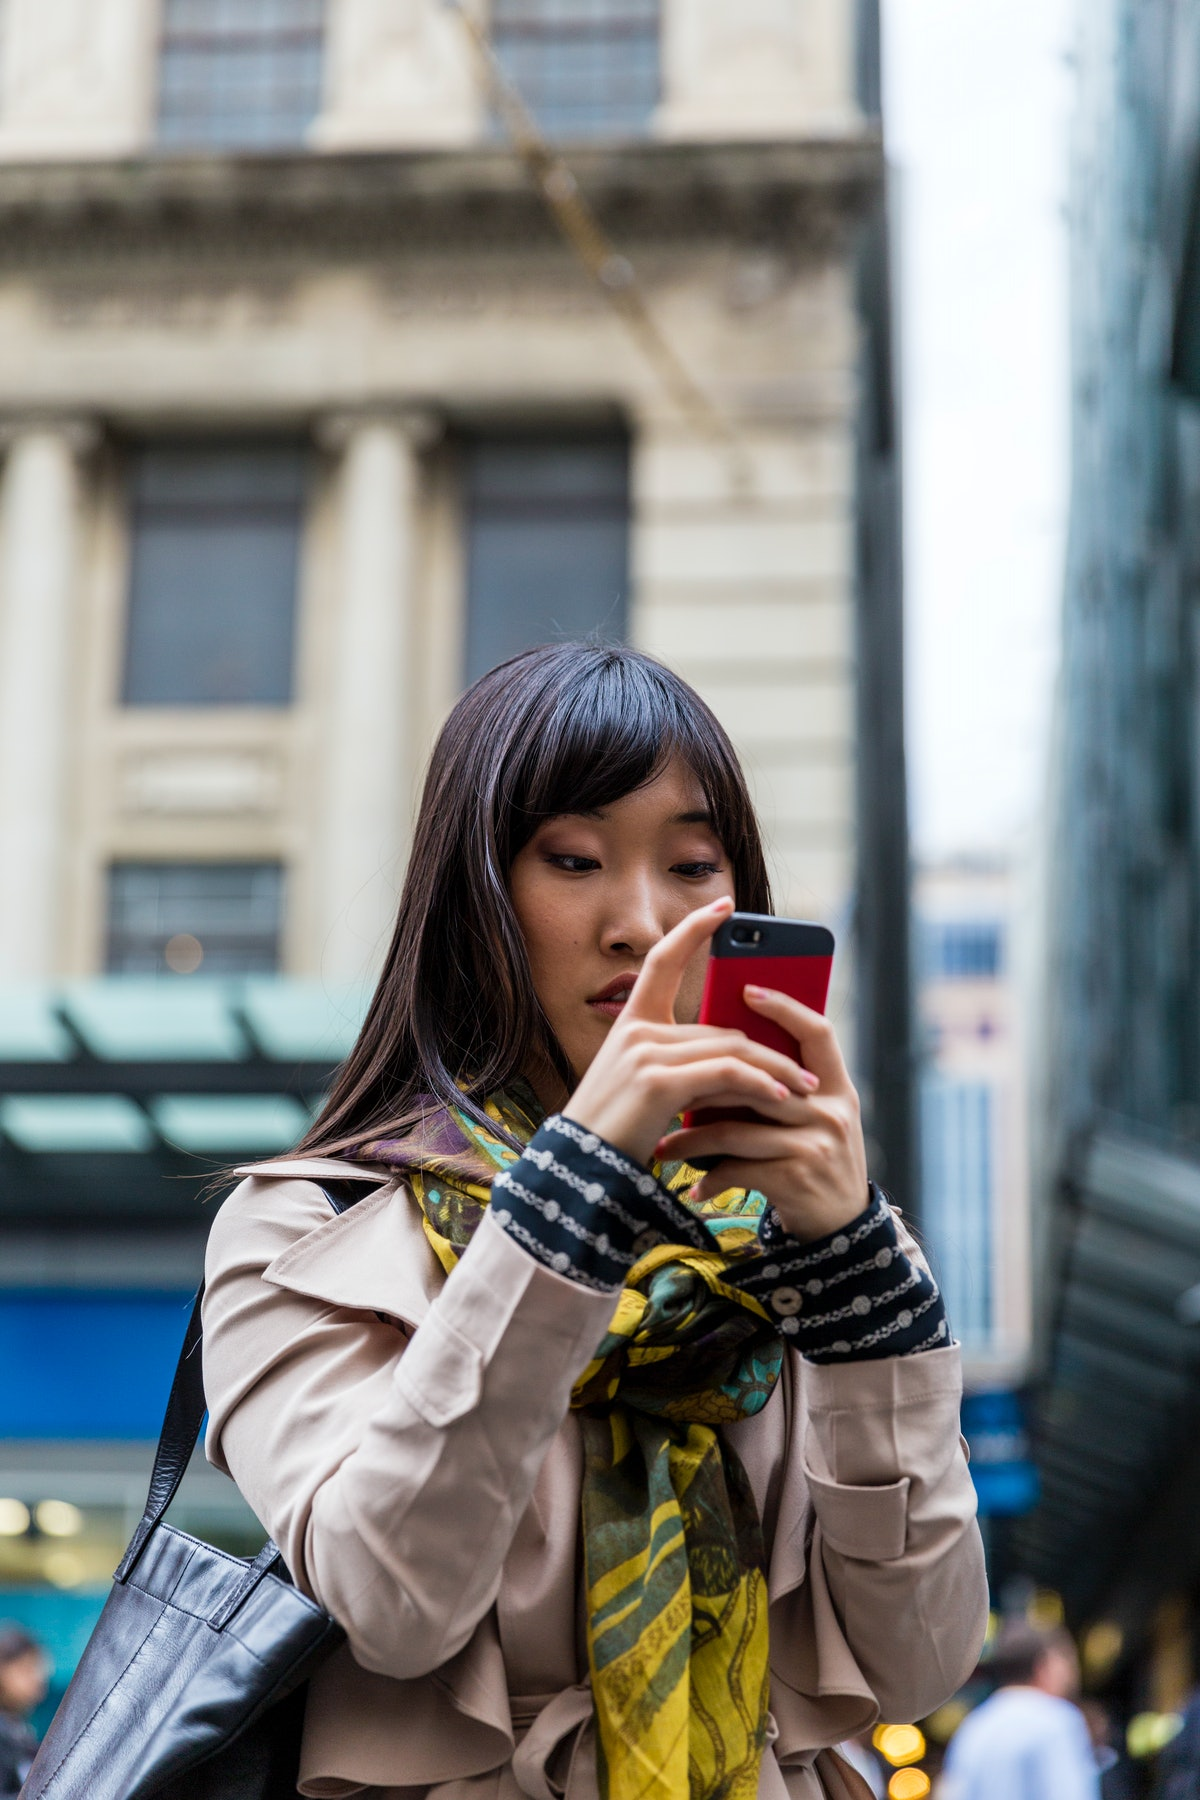 If Your Partner's Social Media Behavior Makes You Uncomfortable, Here's How To Talk About It